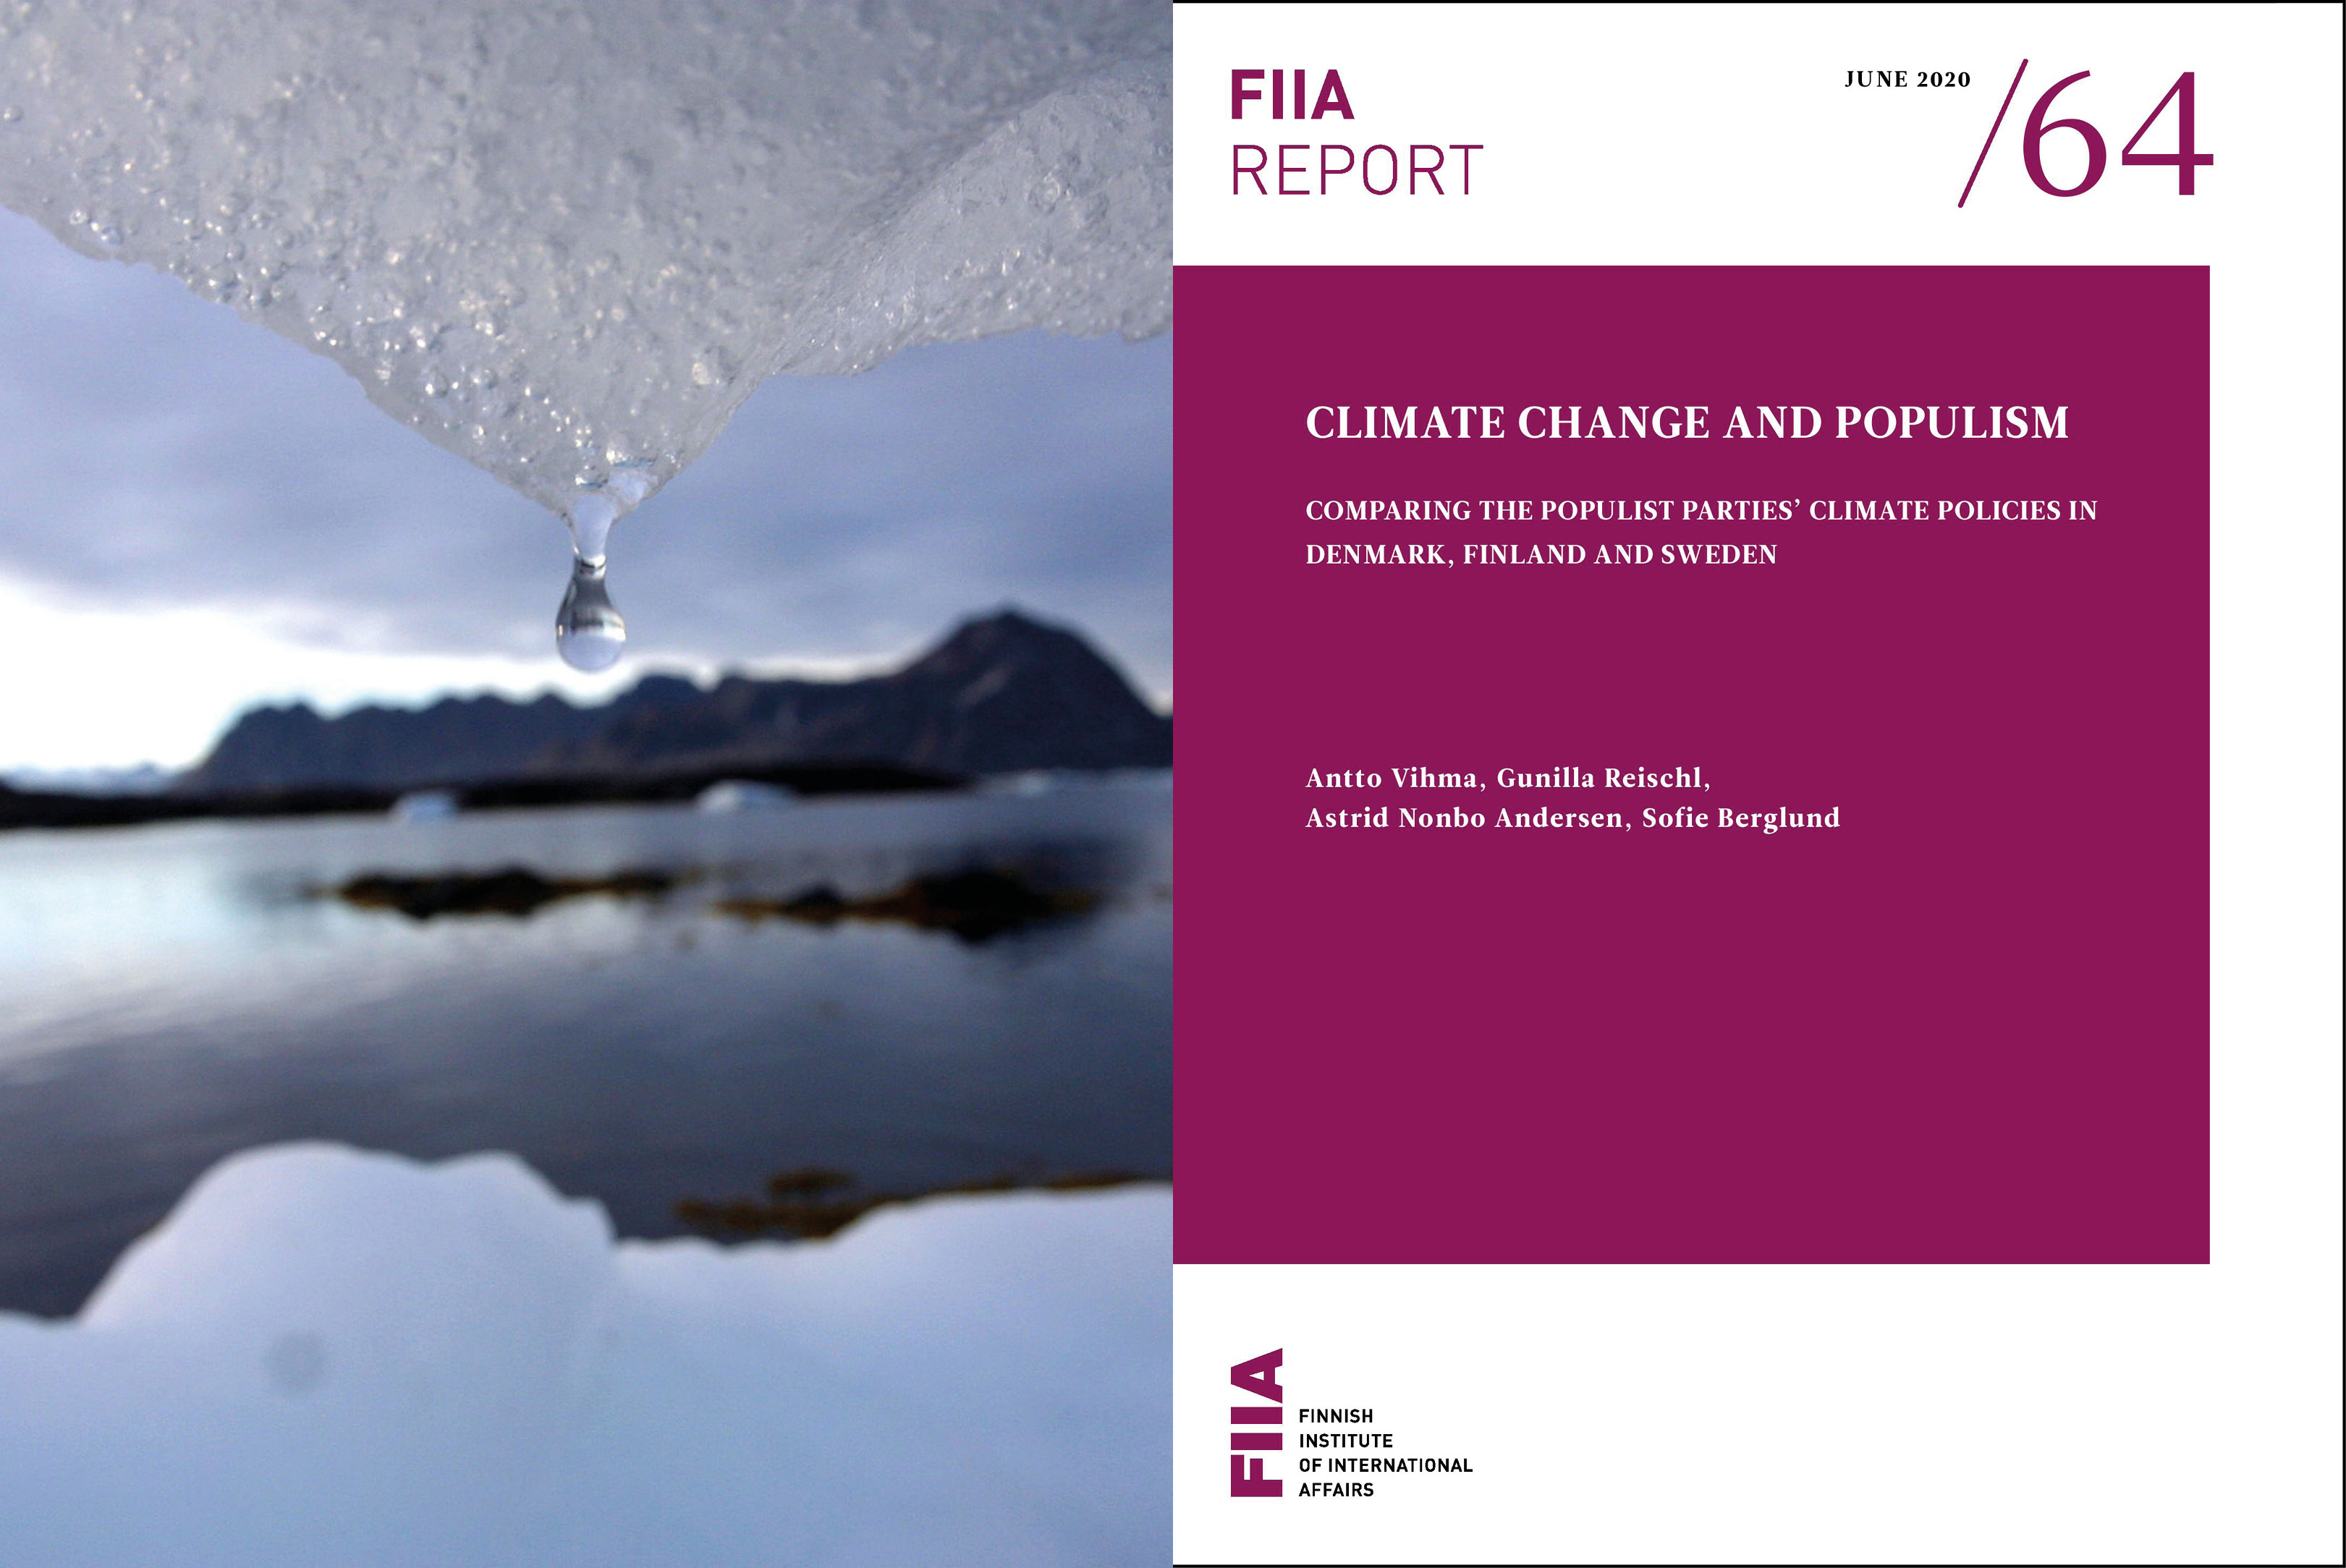 New Report: Climate Change and Populism: Comparing the populist parties' climate policies in Denmark, Finland and Sweden